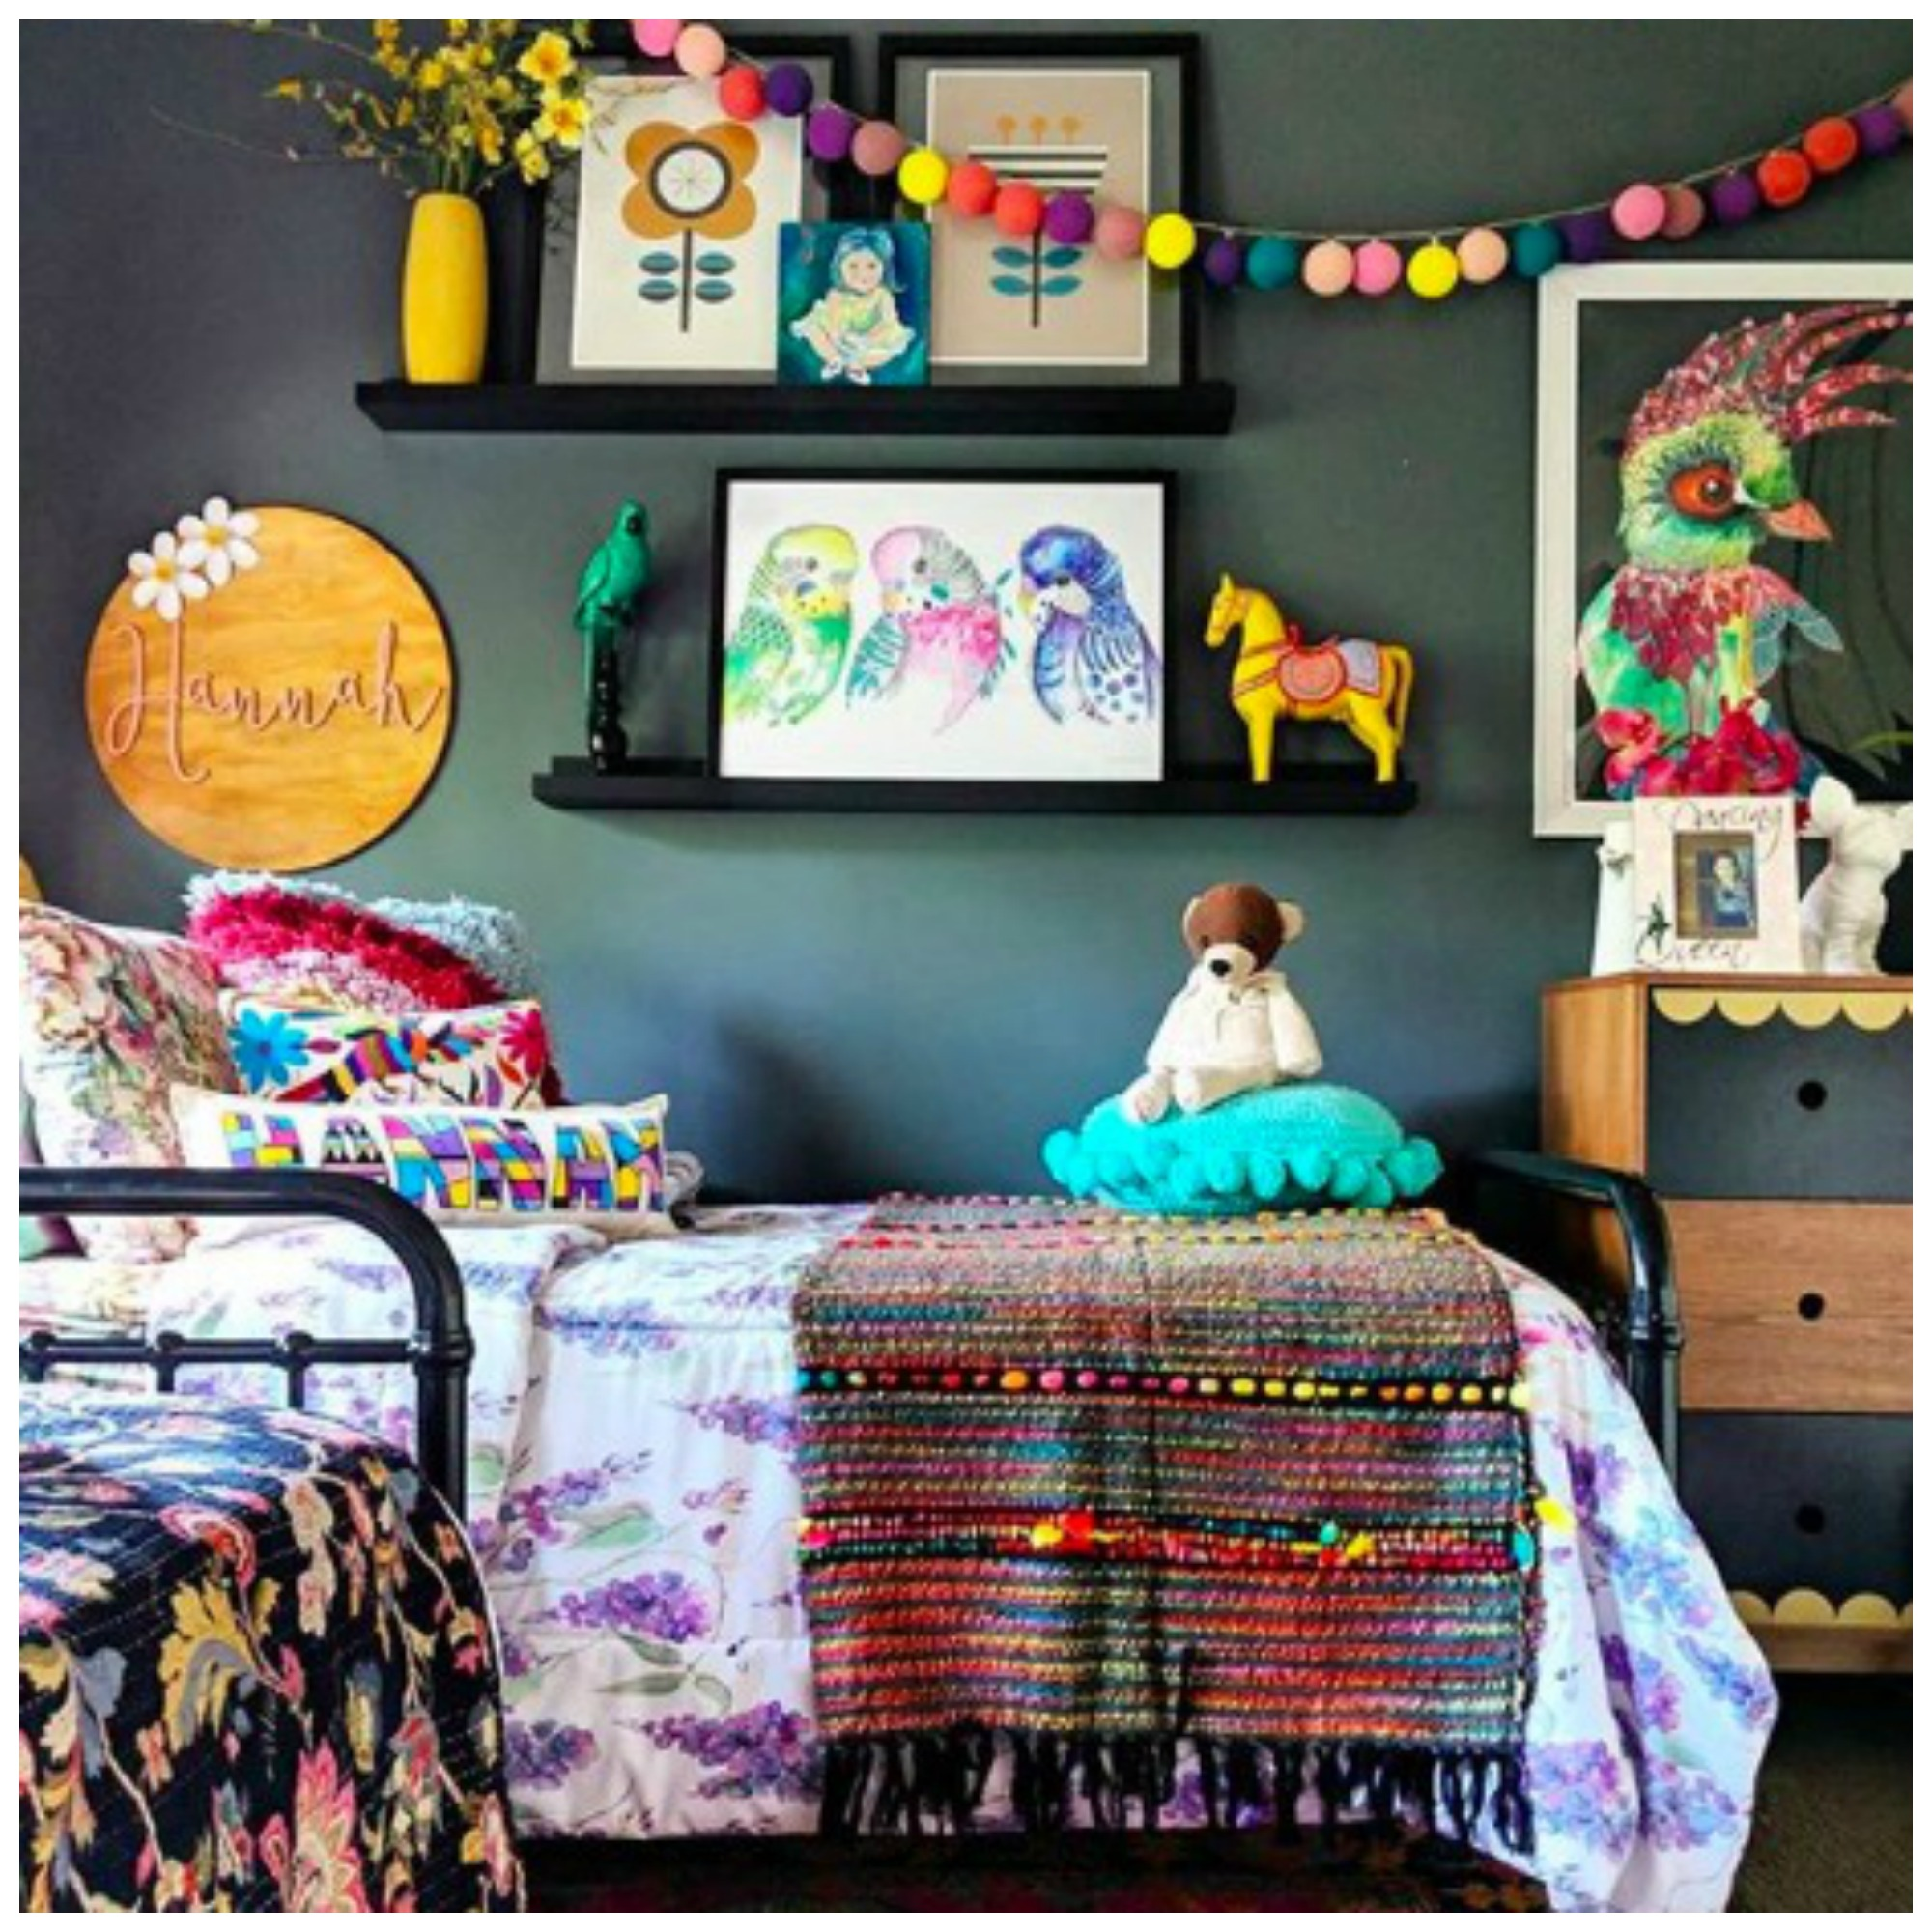 Home Tour: The Colorful Kid Friendly Boho Home In Queensland Australia of Brandi Love, The Hectic Eclectic